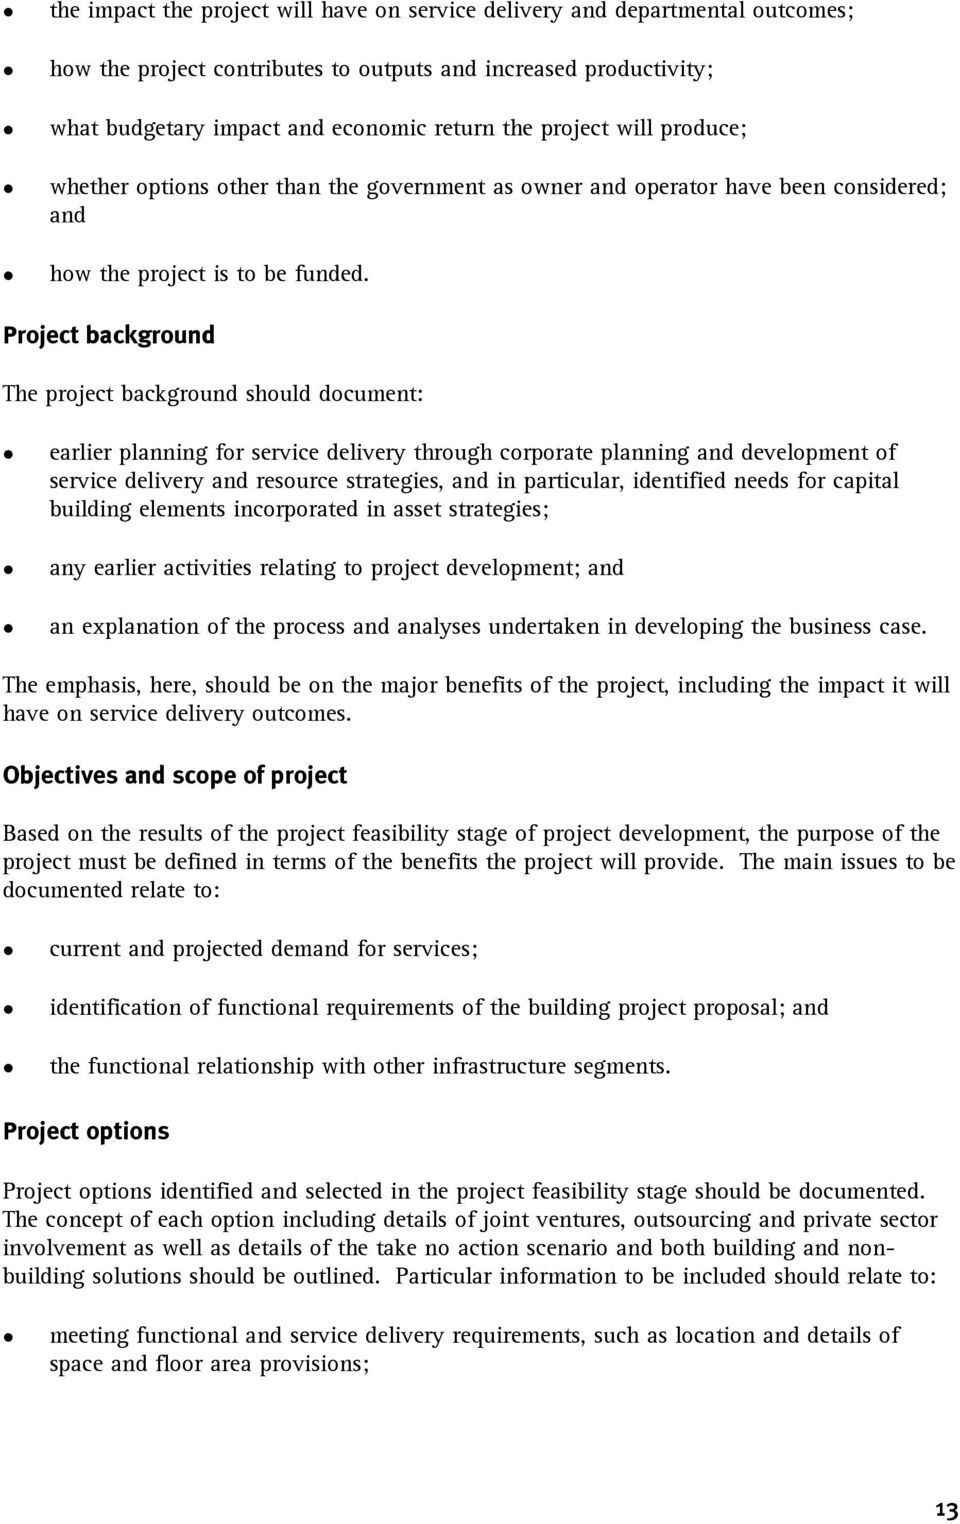 Project background The project background should document: earlier planning for service delivery through corporate planning and development of service delivery and resource strategies, and in